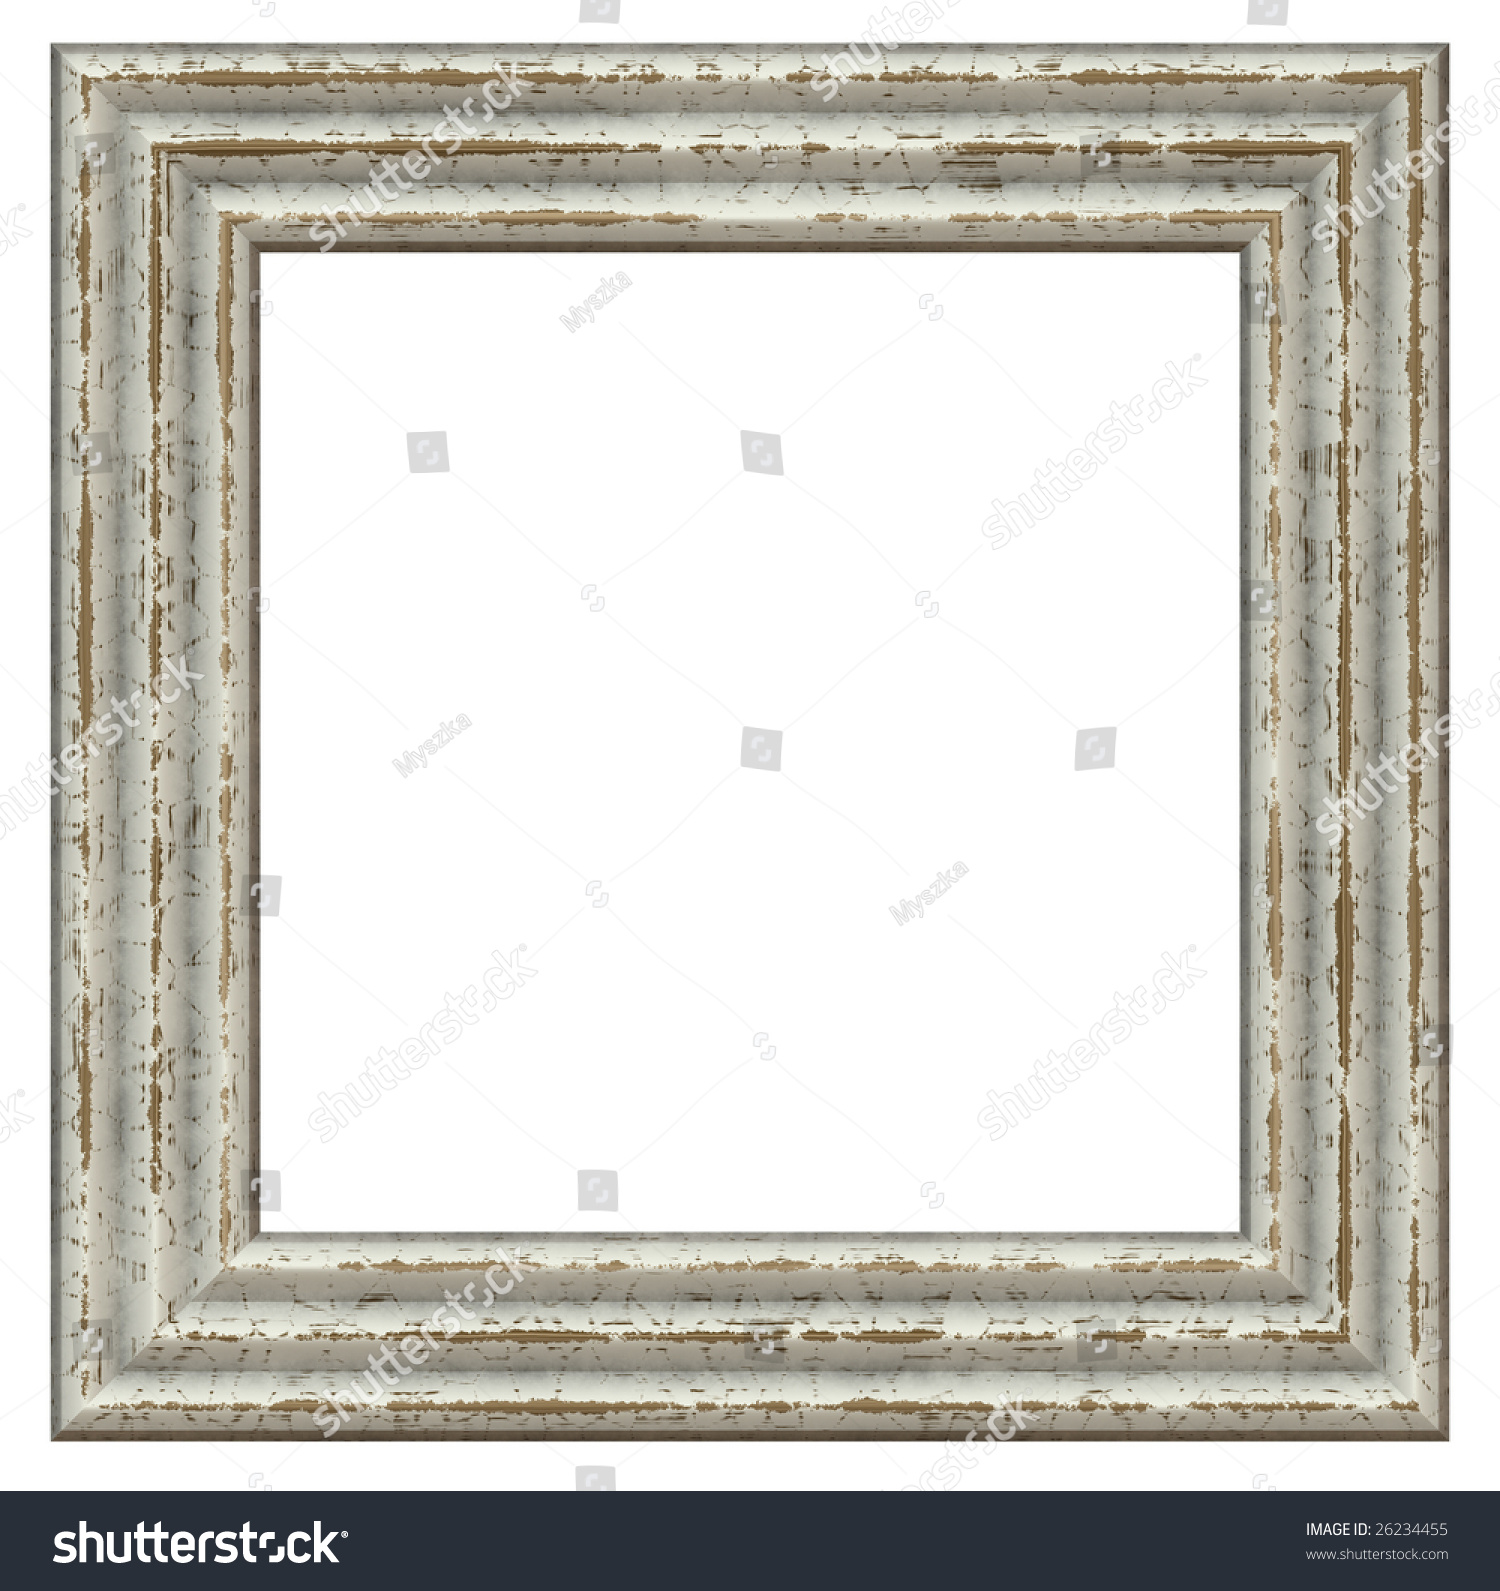 old wooden square frame